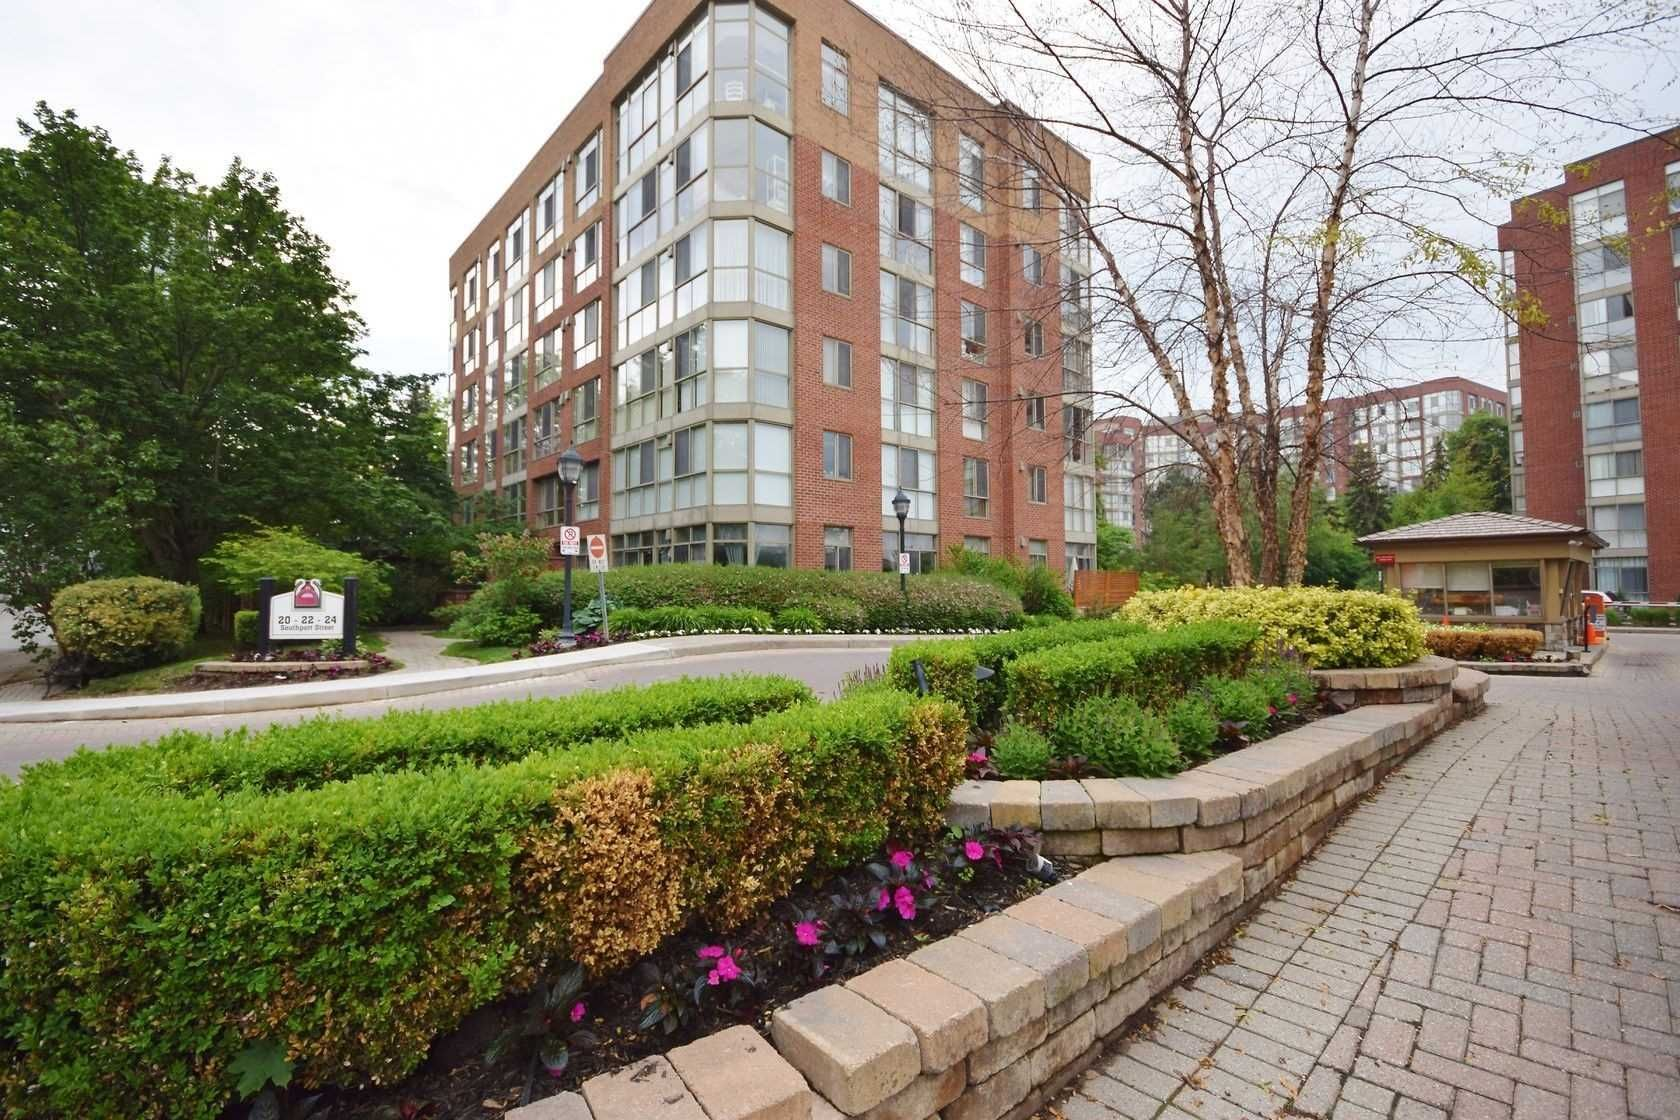 20 Southport St, unit 214 for sale in Toronto - image #1